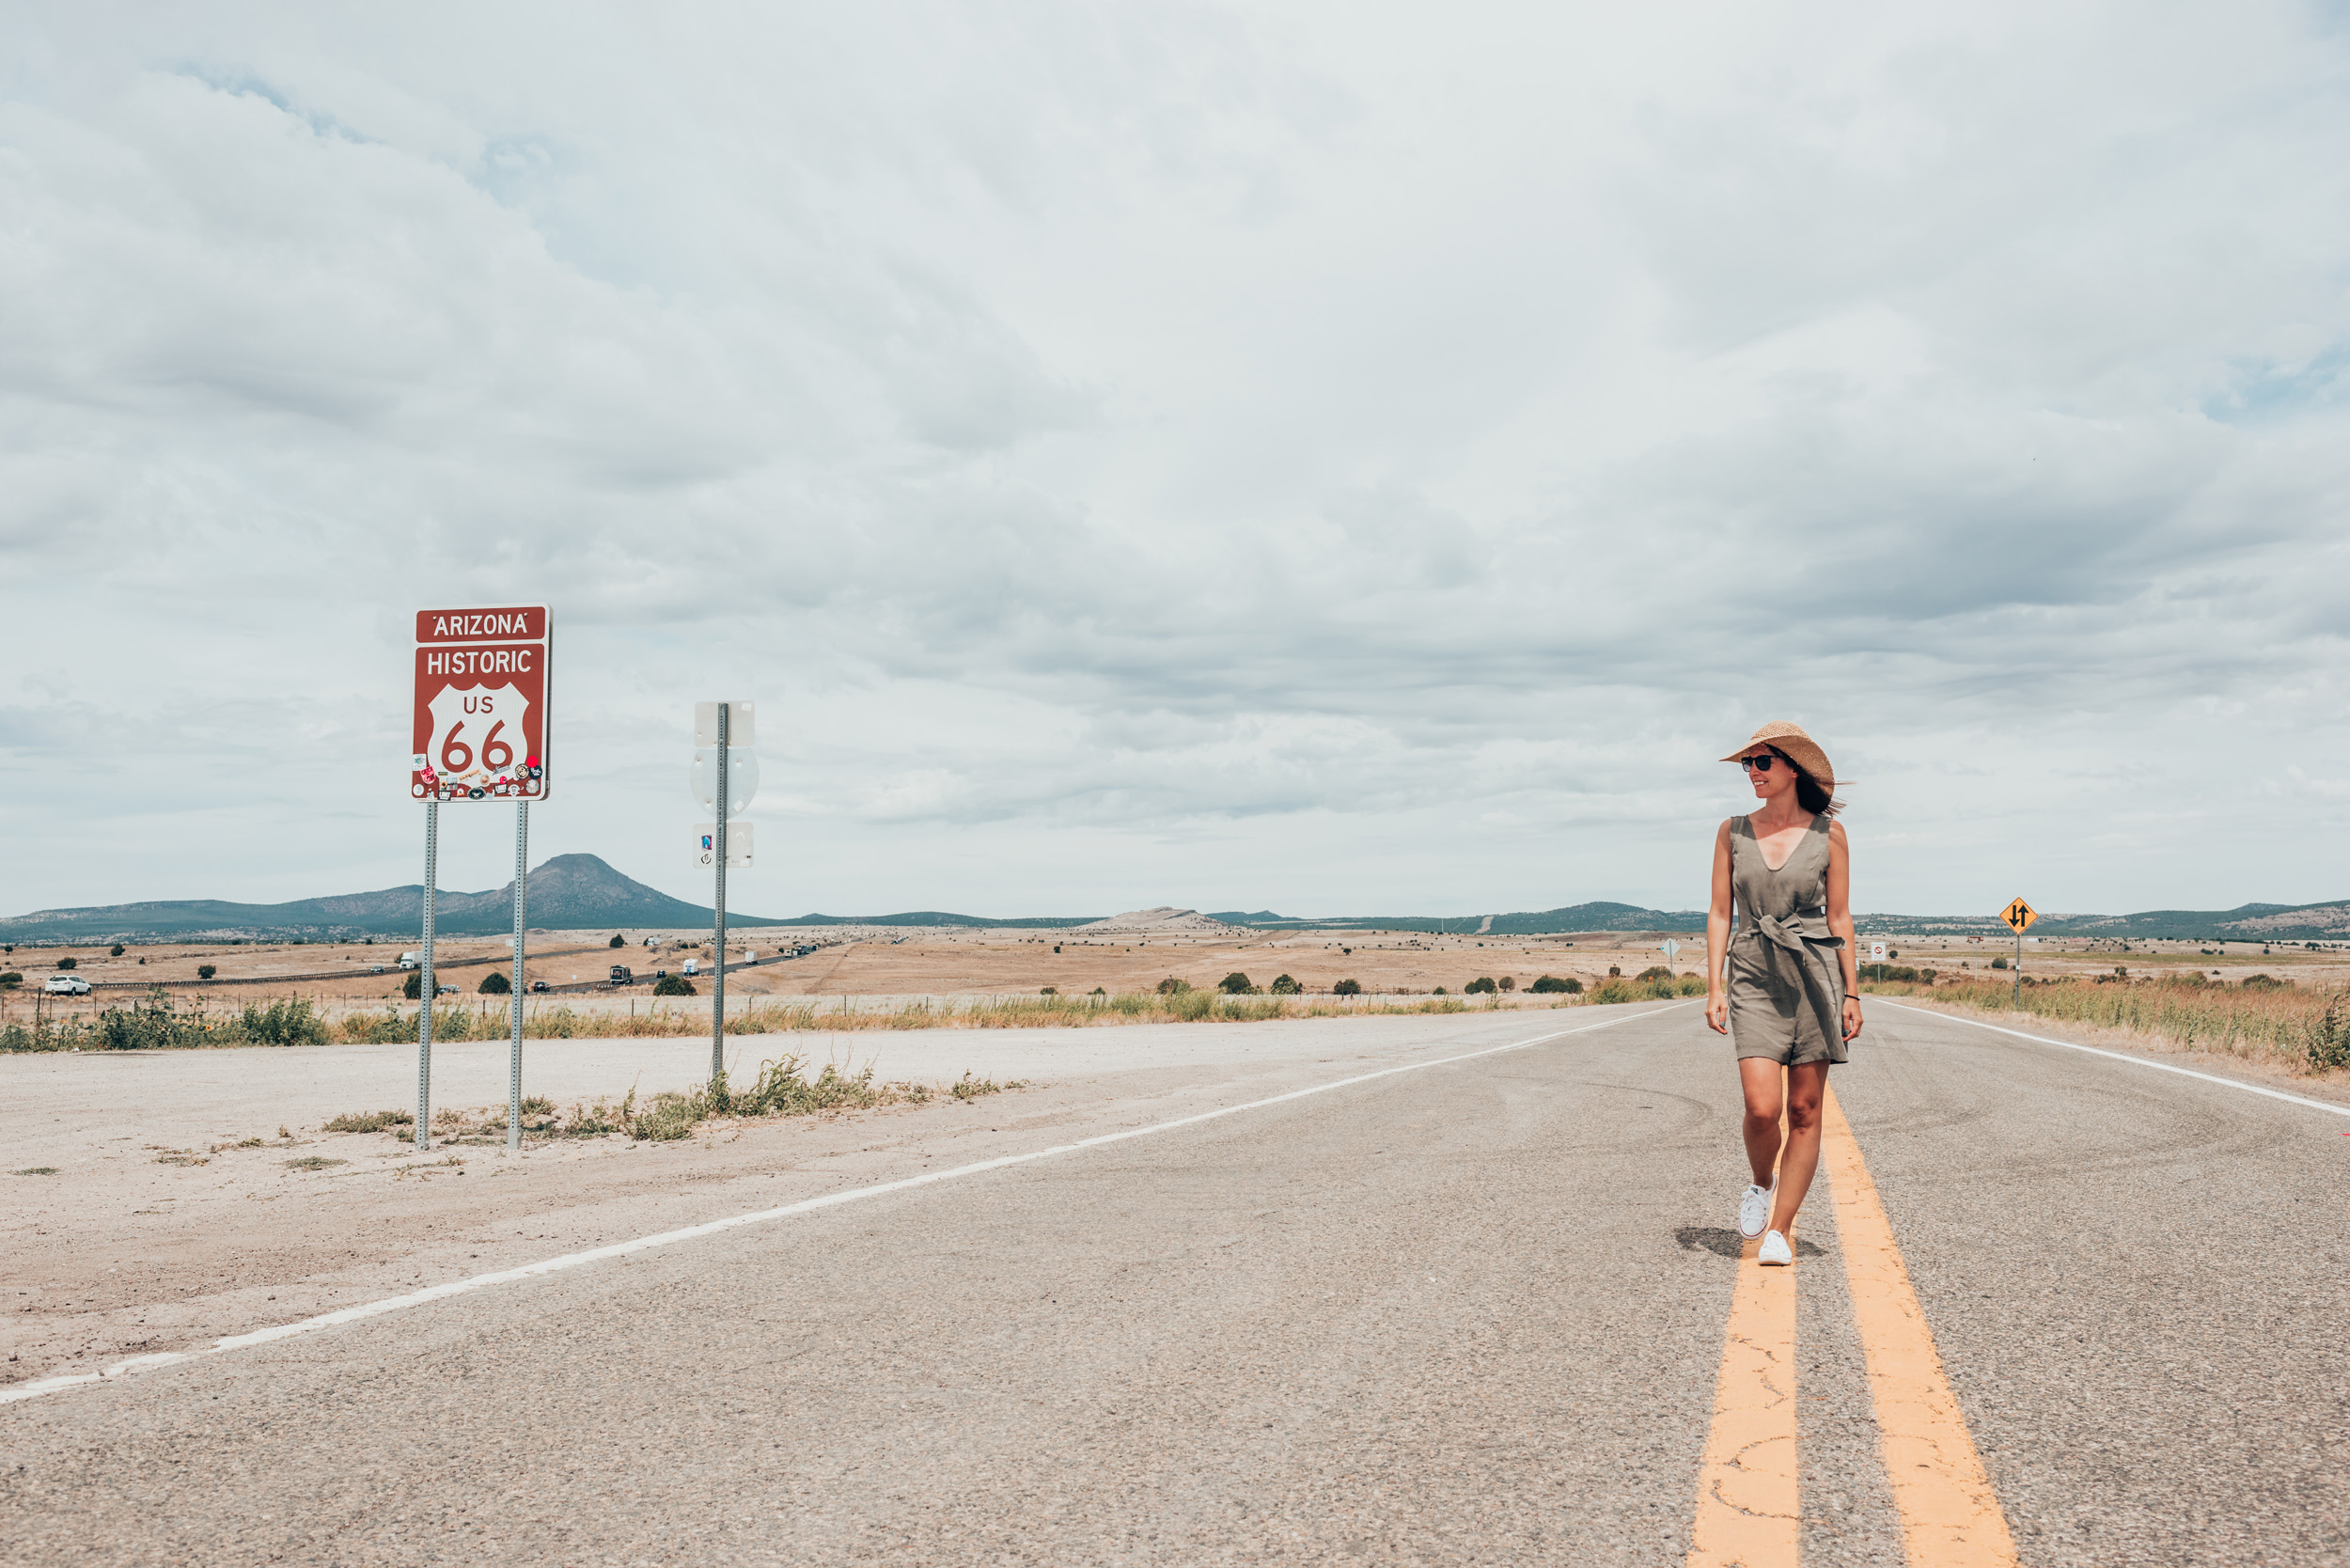 ROUTE 66 - ON THE WAY HOME